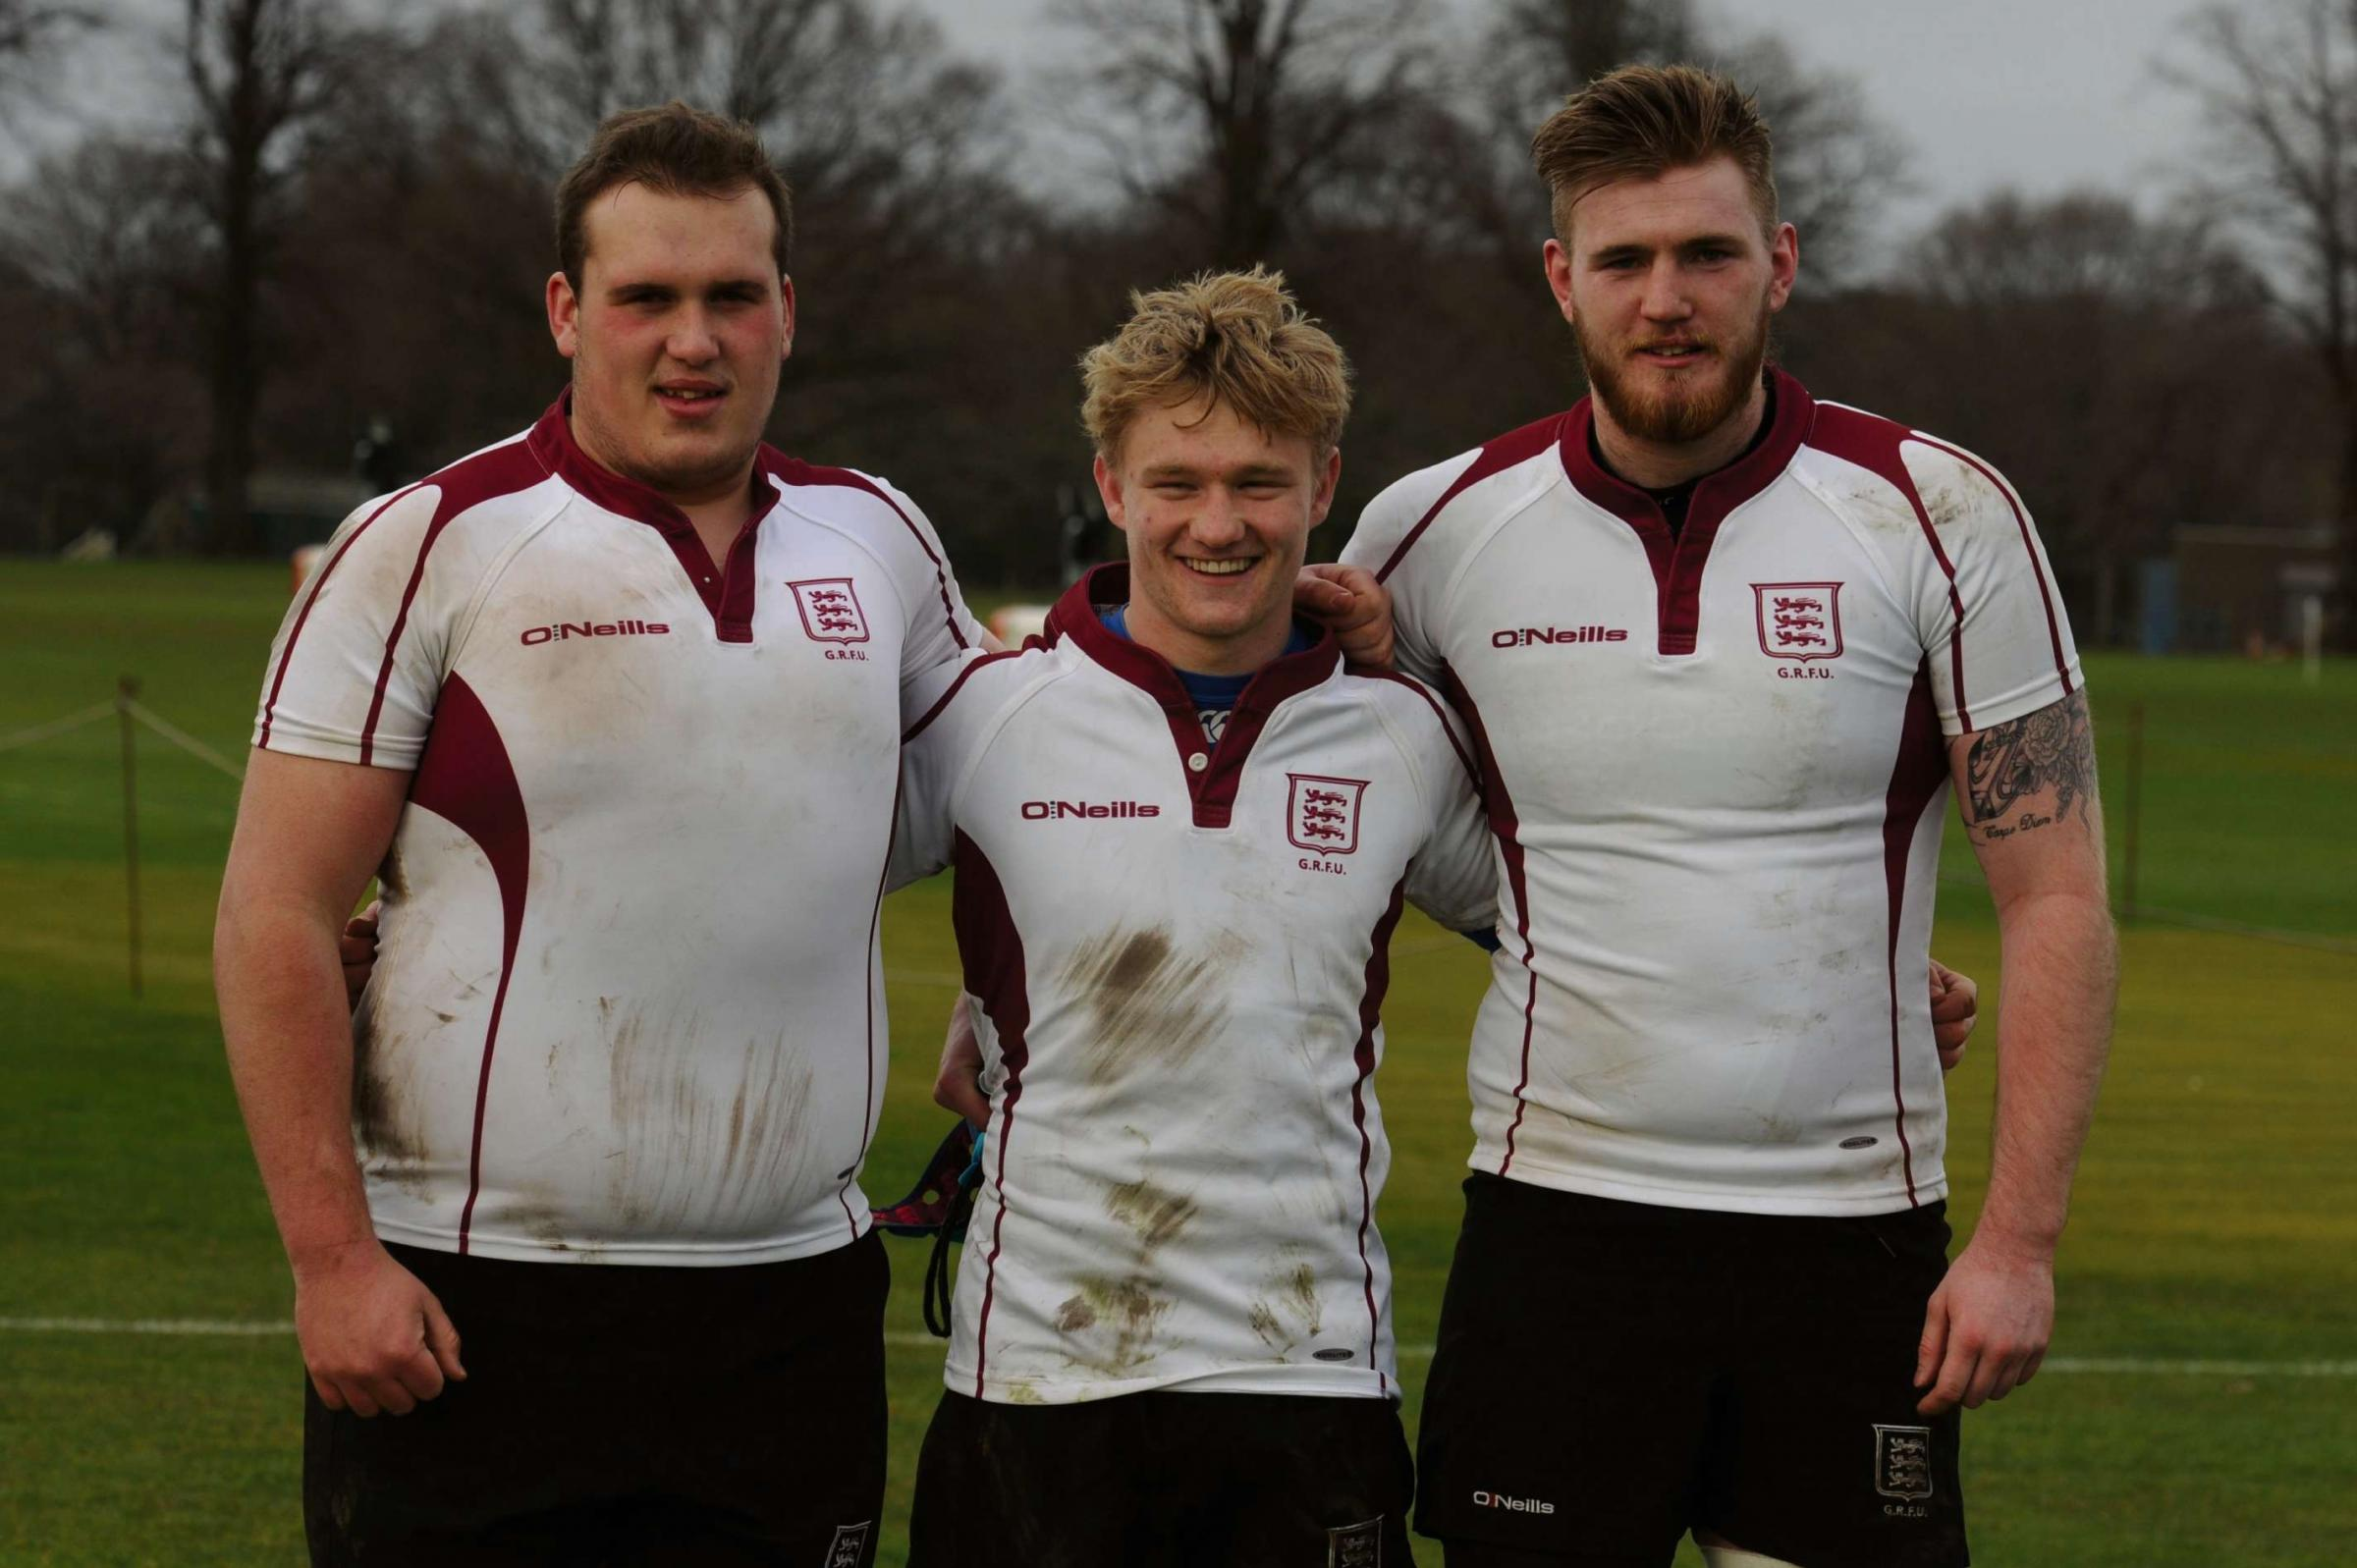 Rugby: Gloucestershire lose to Kent in National U20 Championship